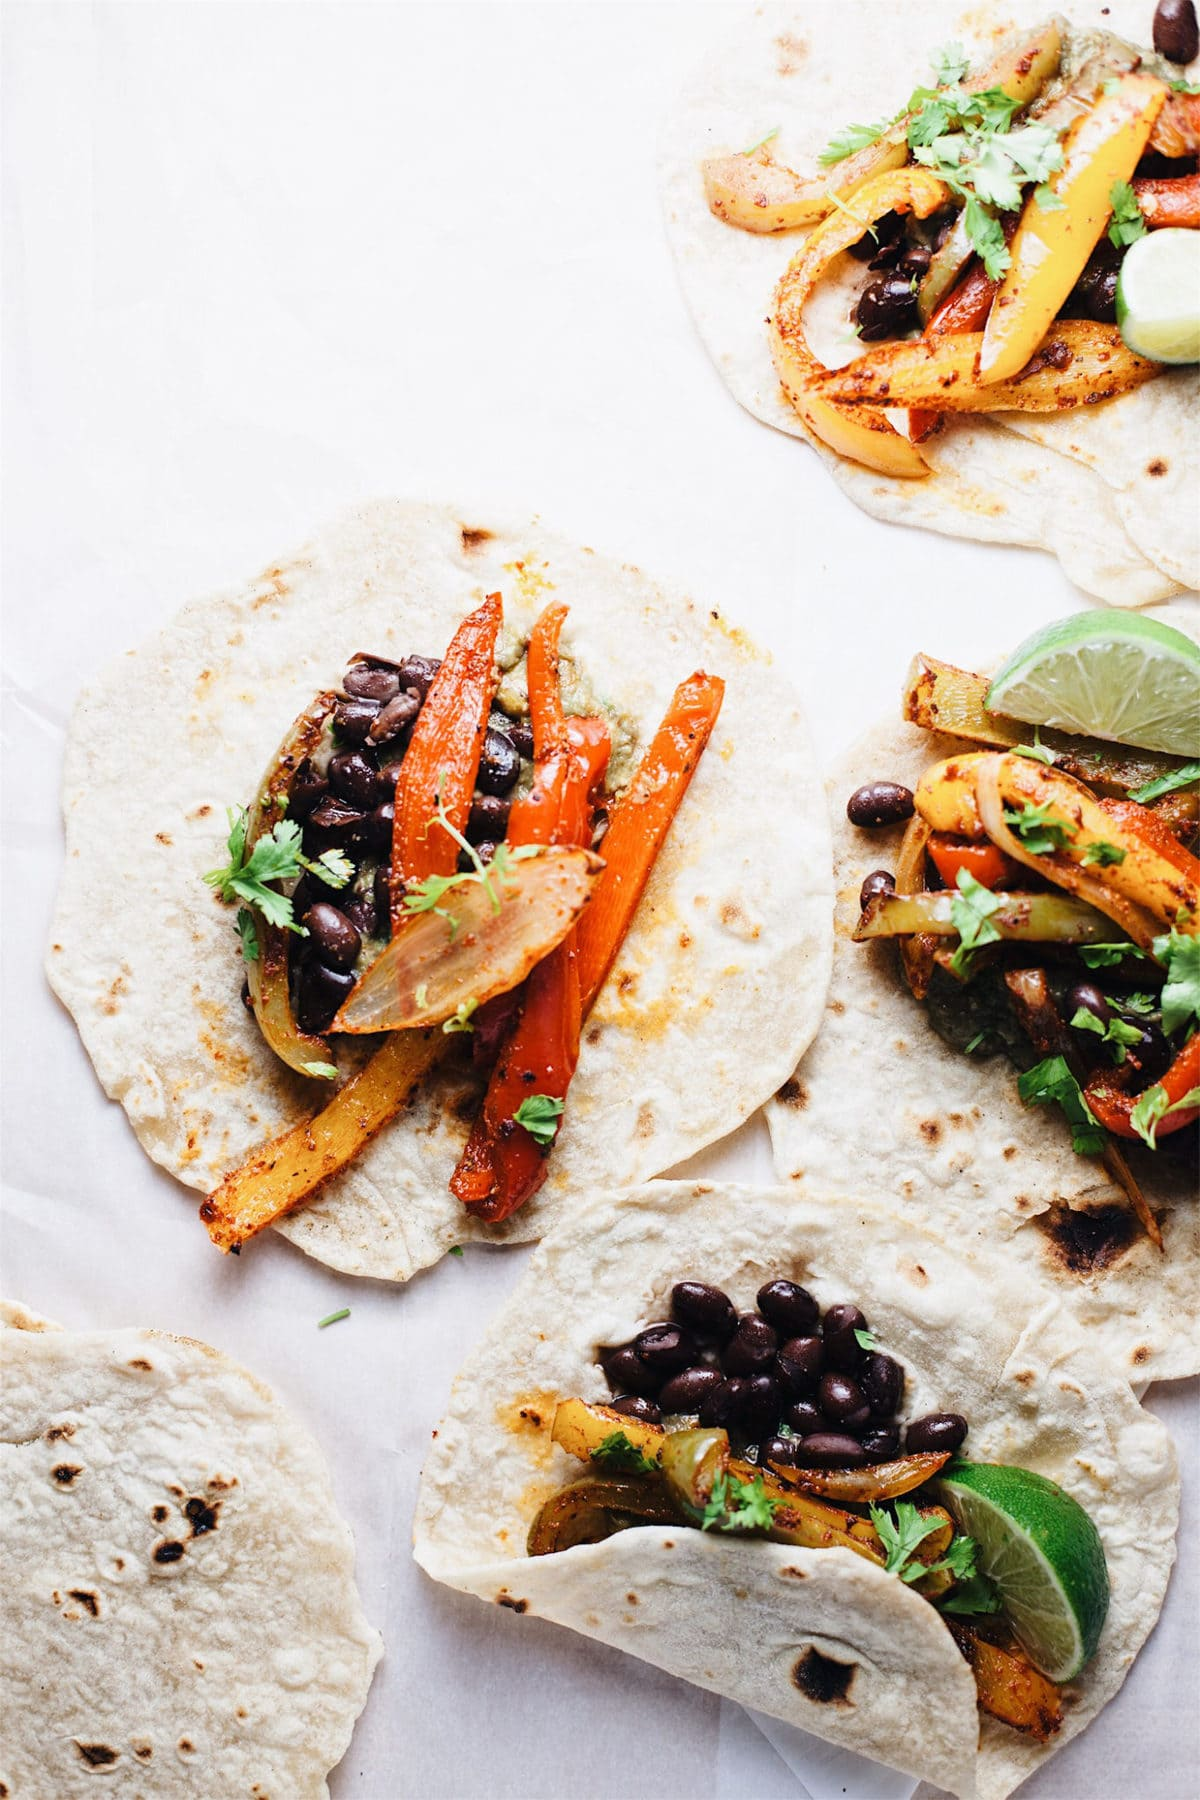 vegetarian fajitas displayed on parchment papaer